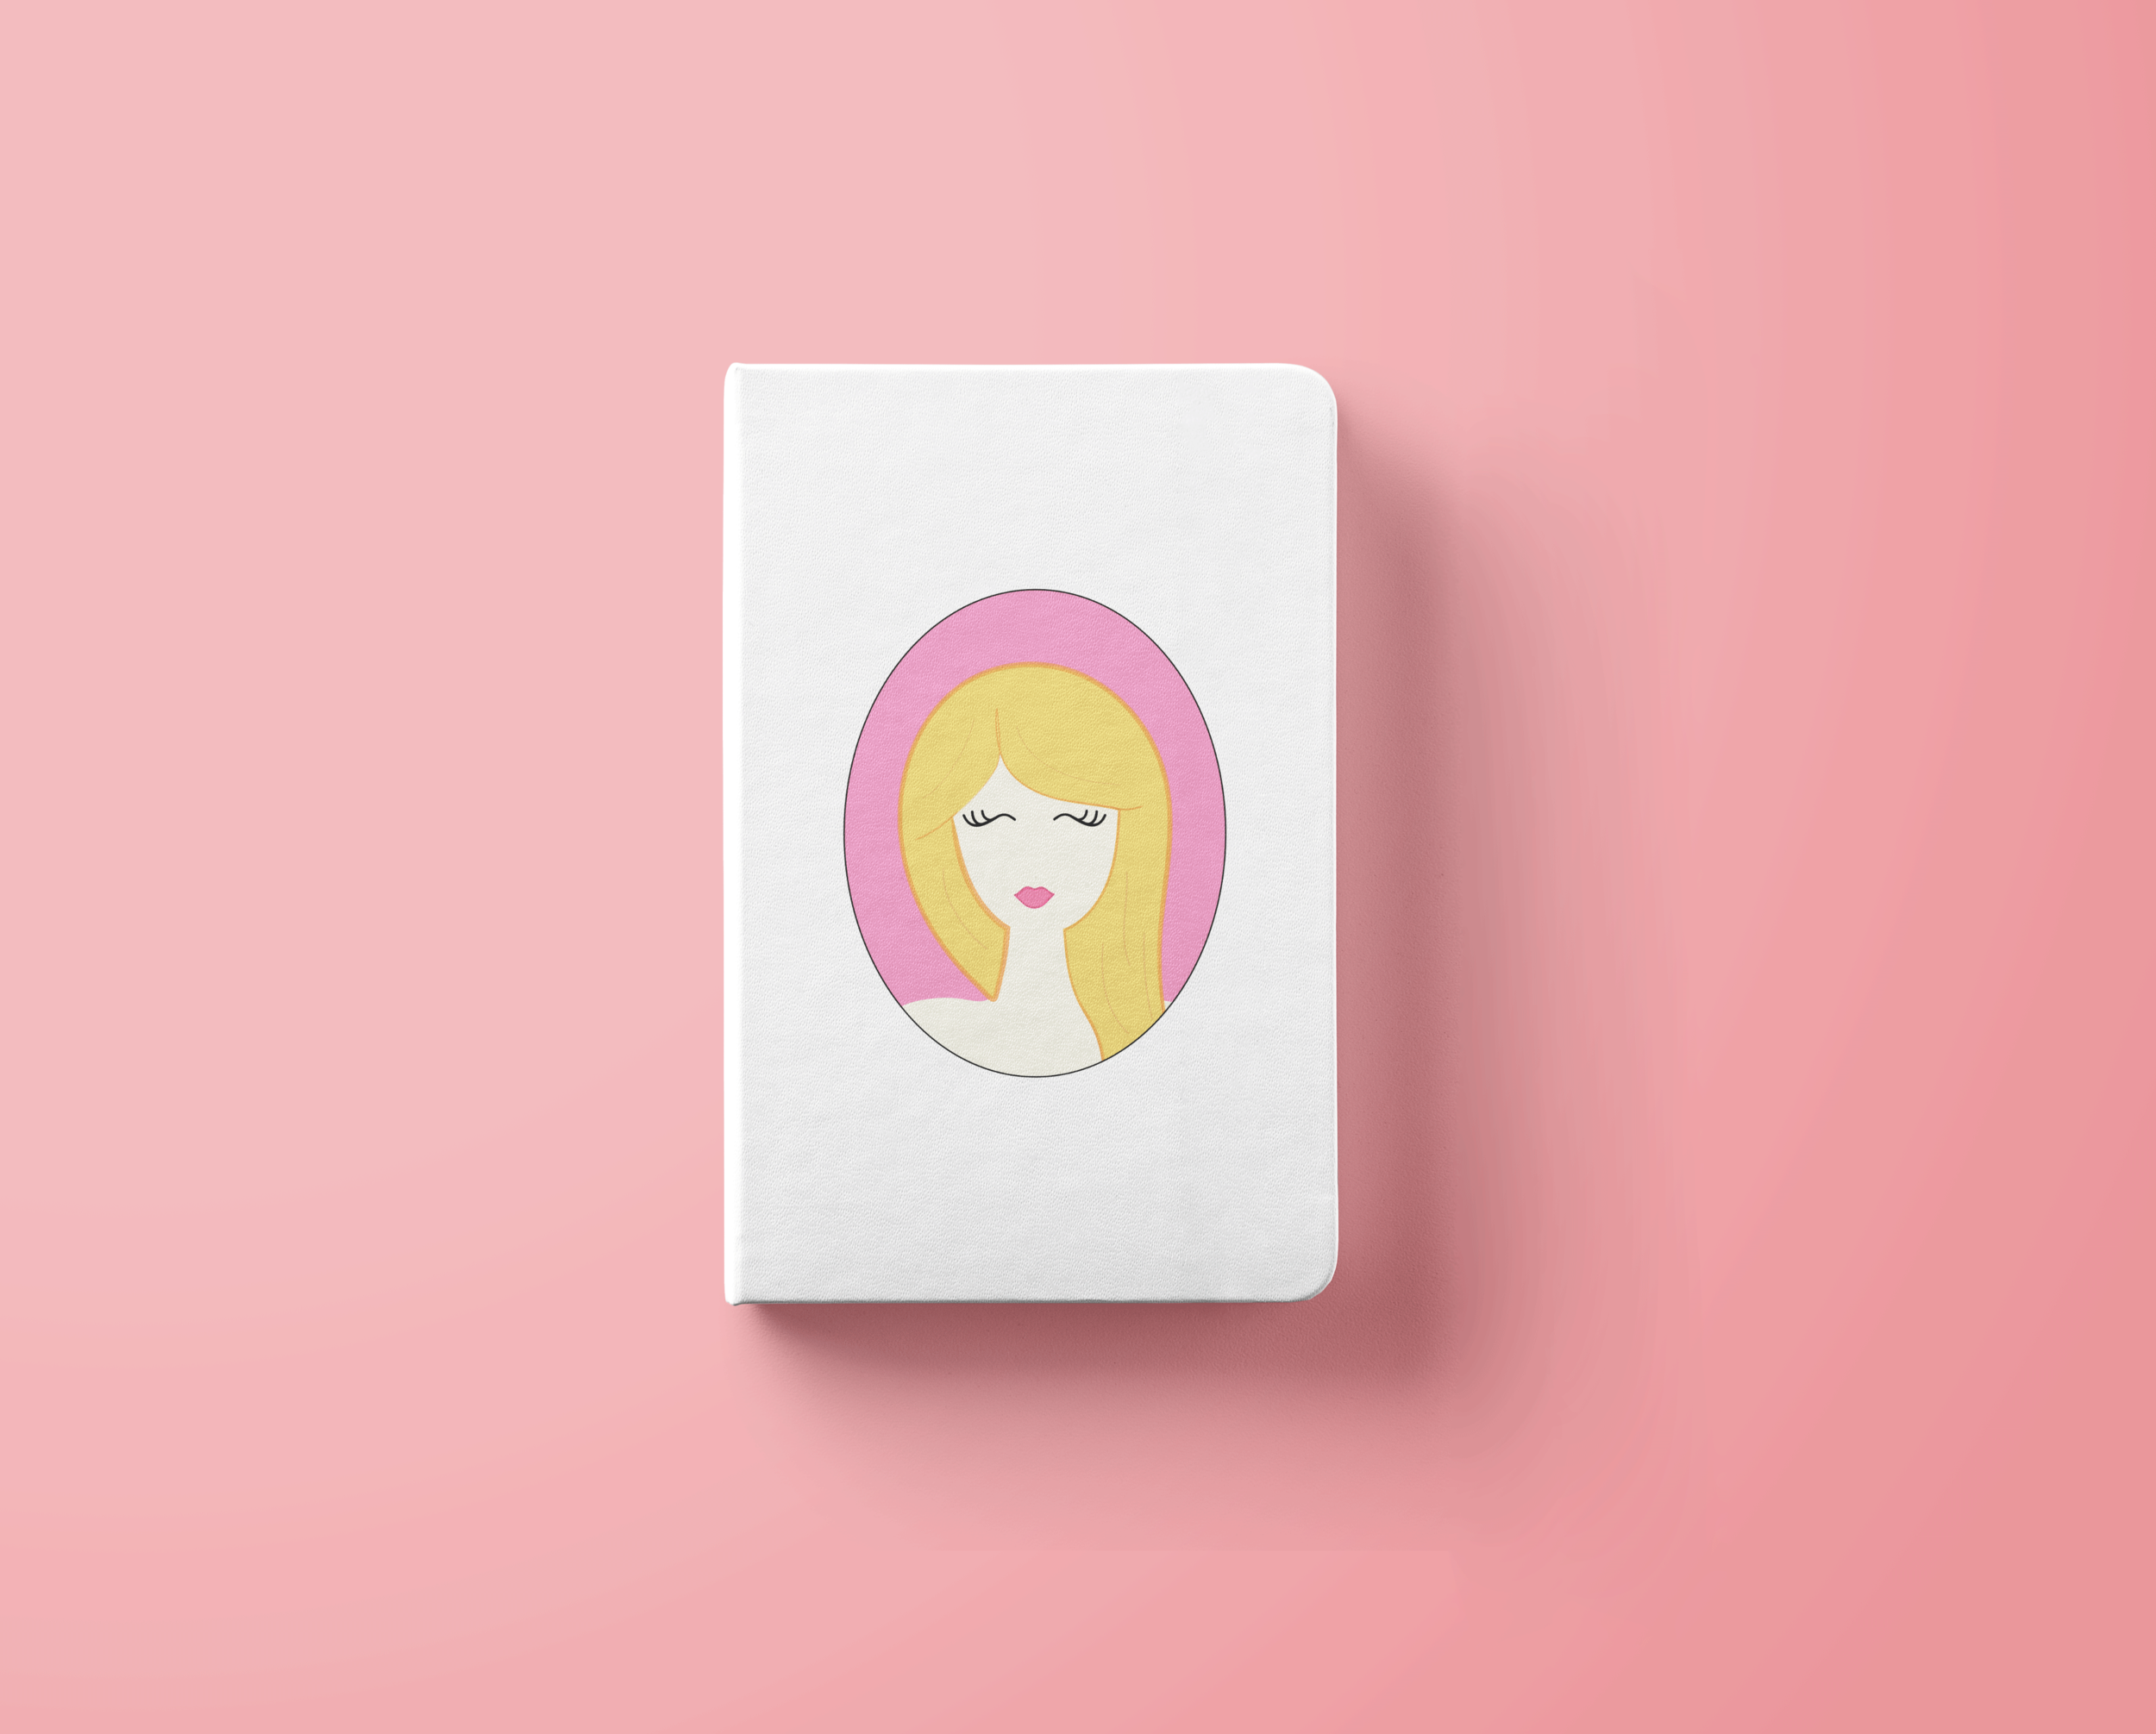 GUIDE TO HAIRSTYLES - Icon Design